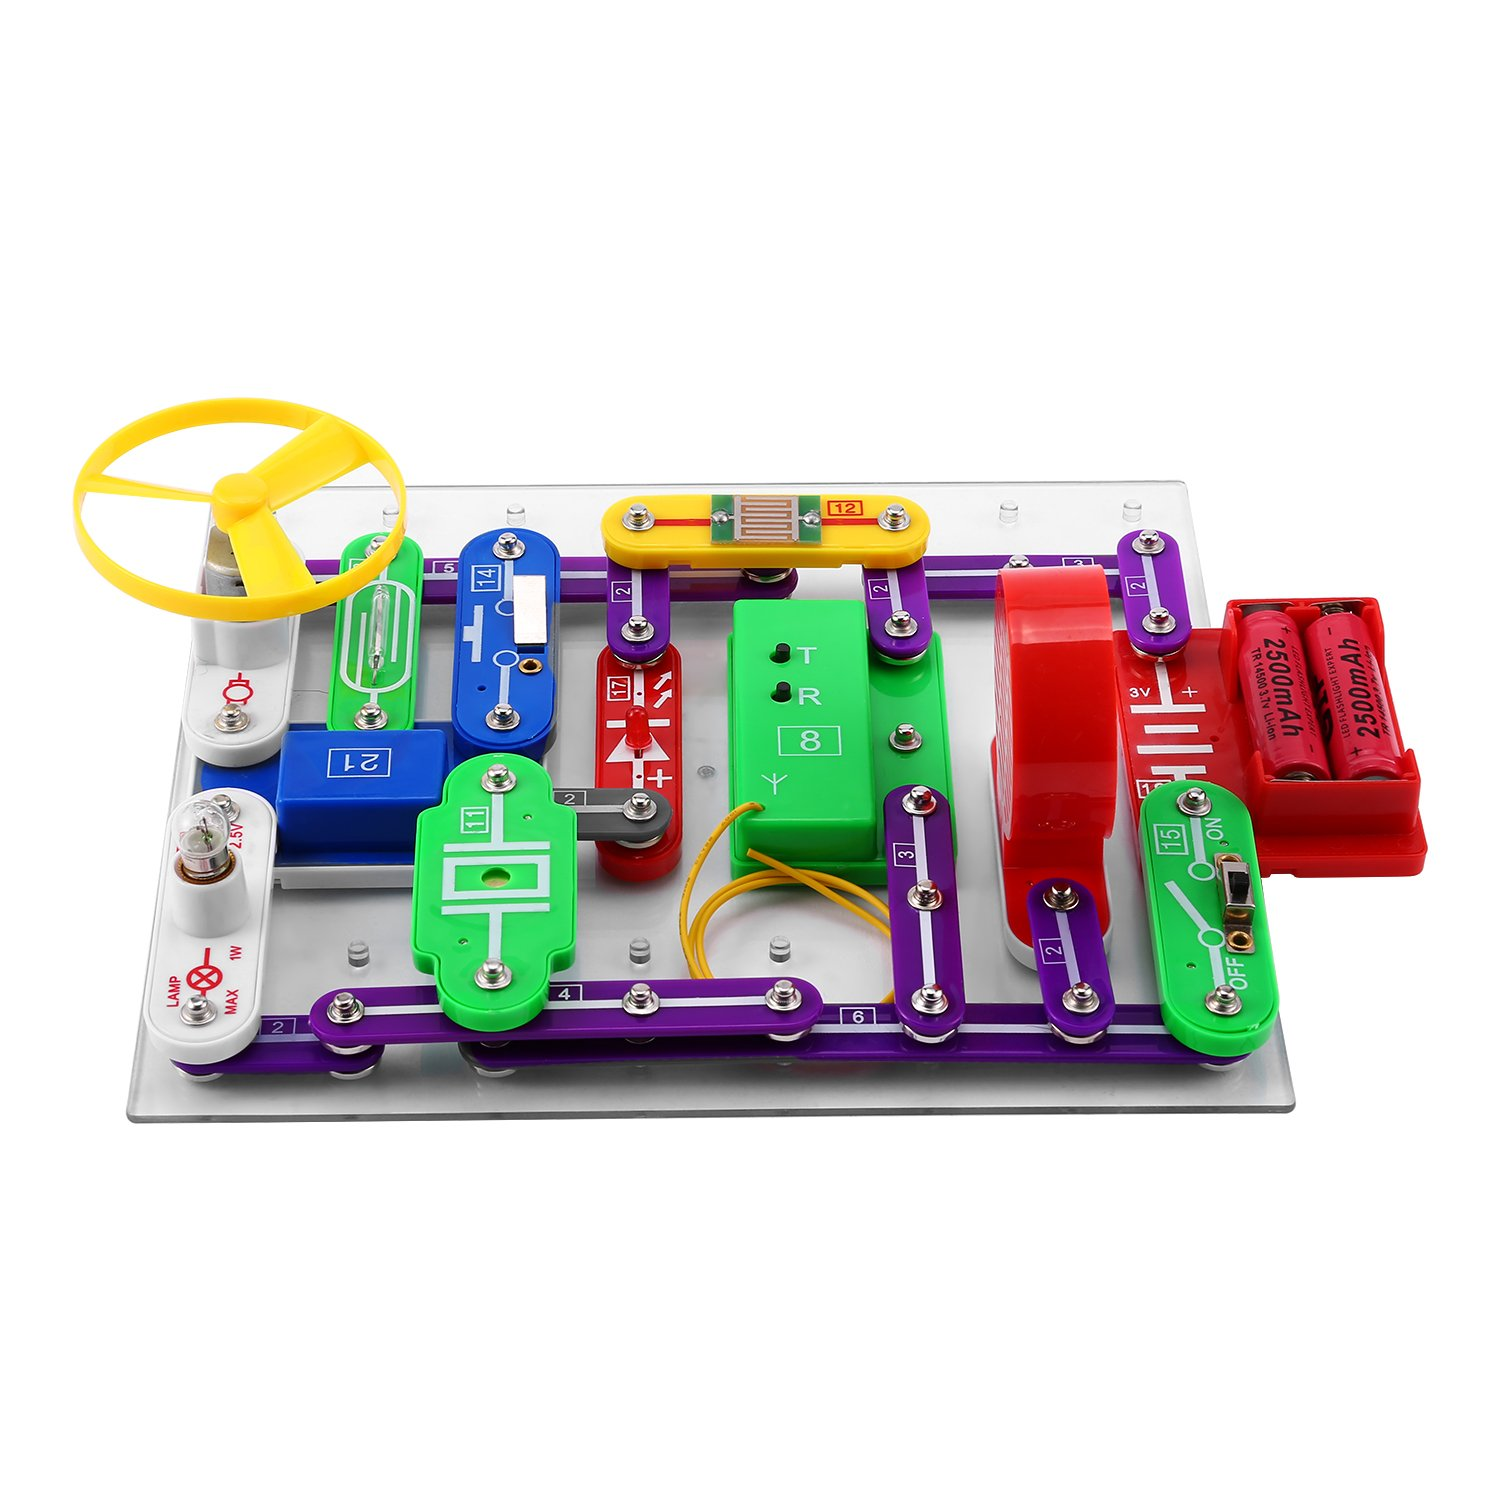 Electronics Block Kit For Children Discovery Smart Snap Circuits R Electronic And Educational Toys Games